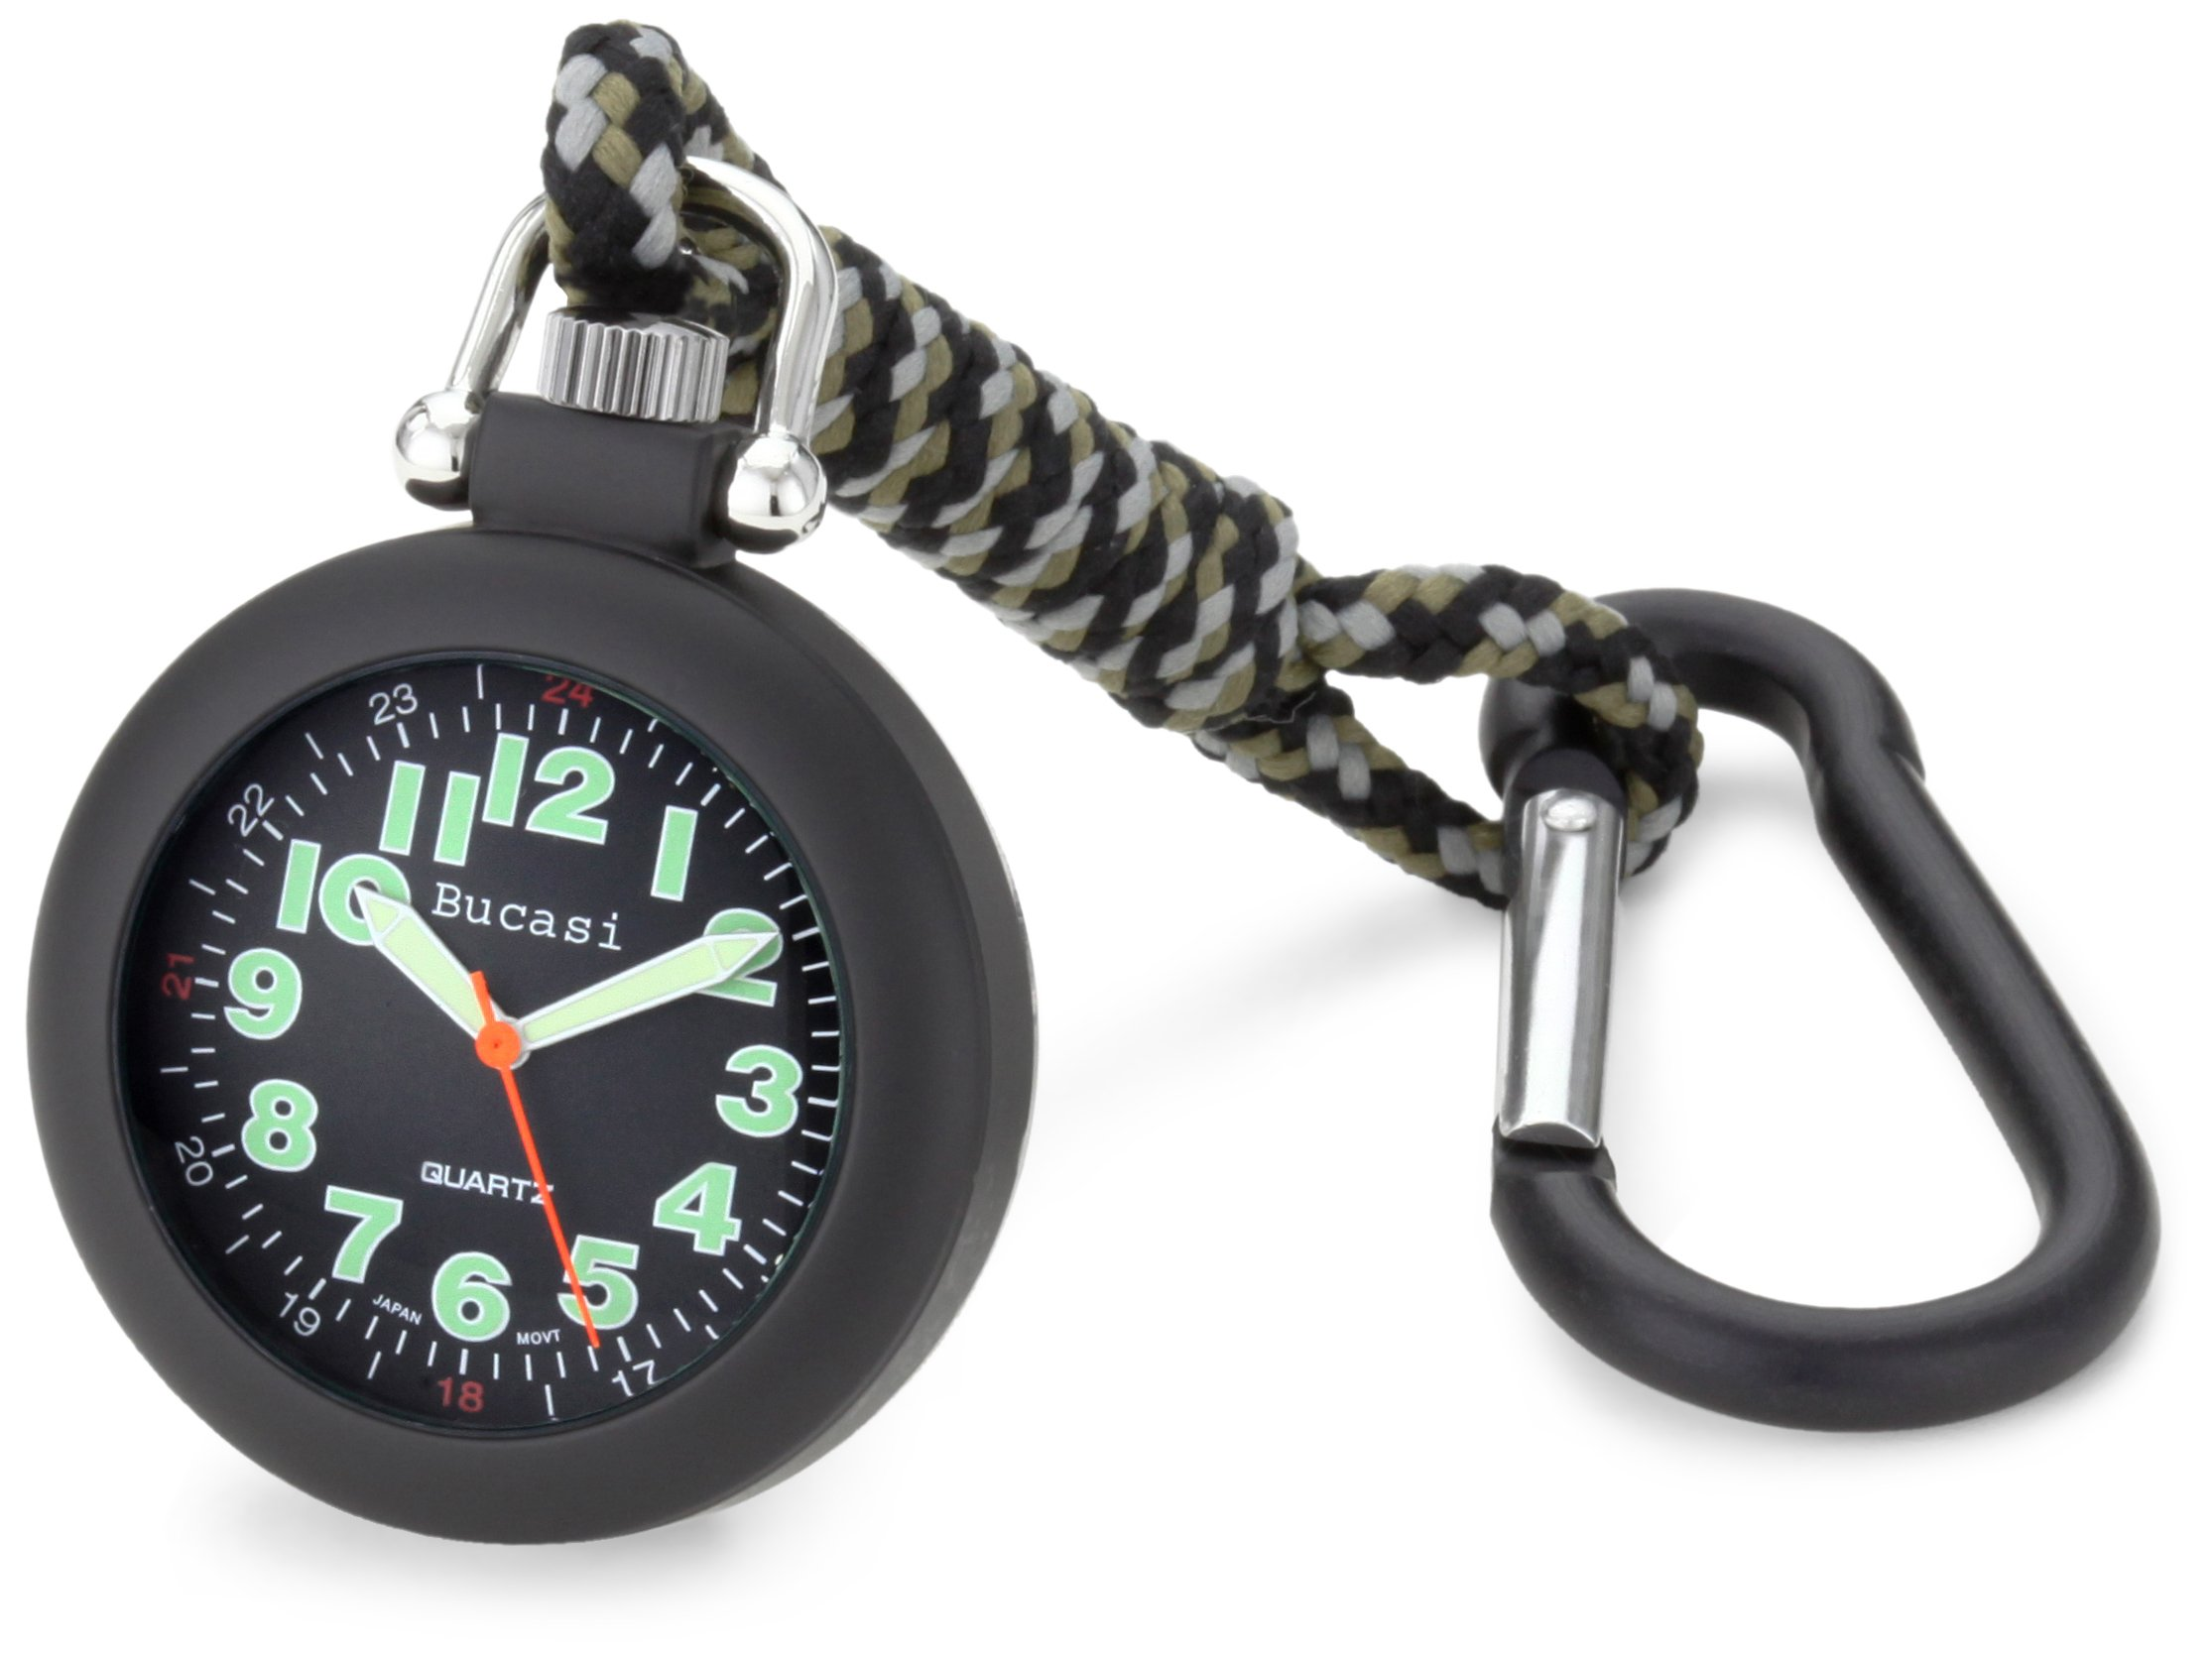 Bucasi PW1030B Military Luminous Easy To Read Spring Clip Pocket Watch by Bucasi